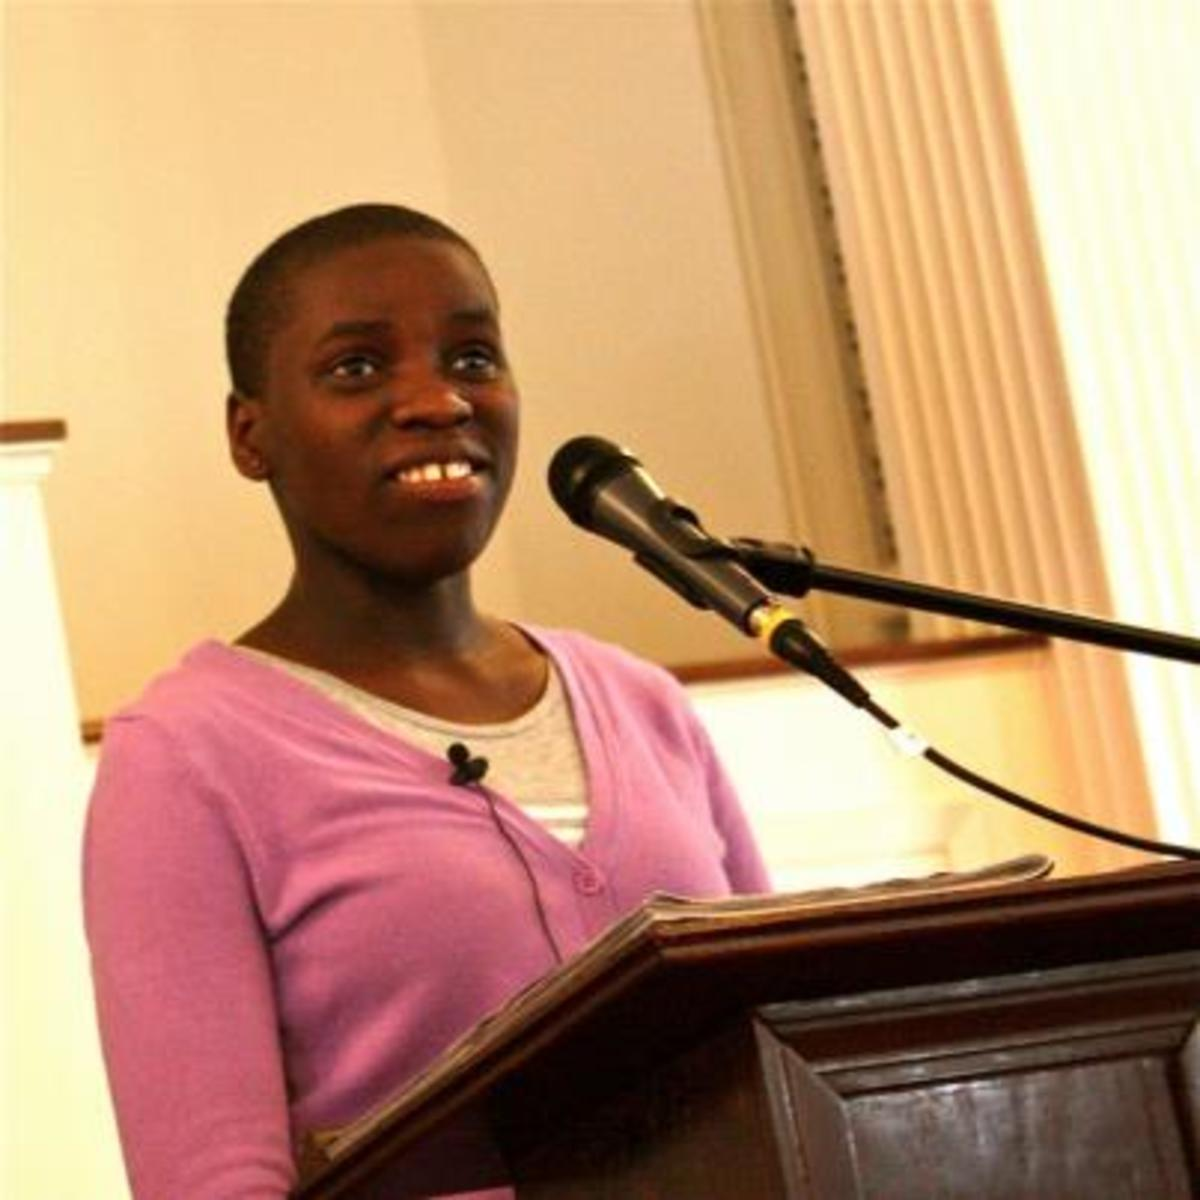 Phiona Mutesi in the United States